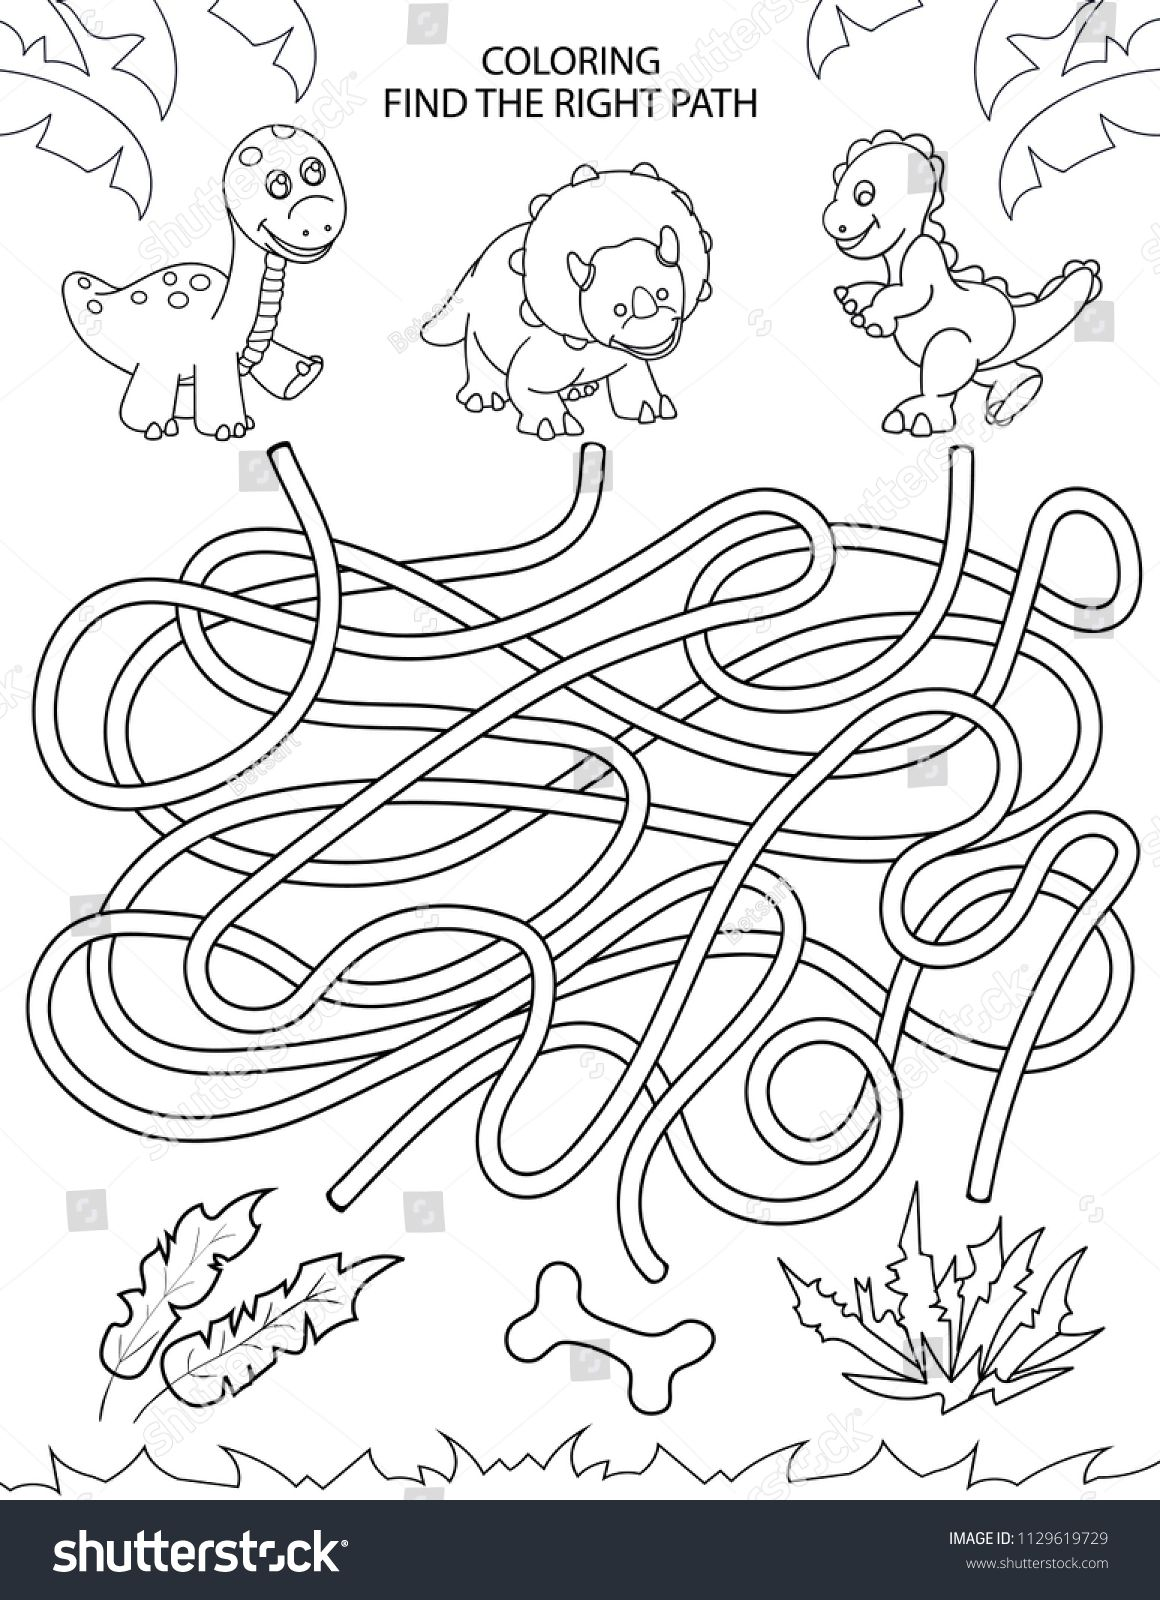 Children Maze And Coloring Kids Labyrinth Game And Activity Page Find The Right Path Fo Dinosaur Activities Preschool Dinosaur Unit Study Dinosaur Worksheets